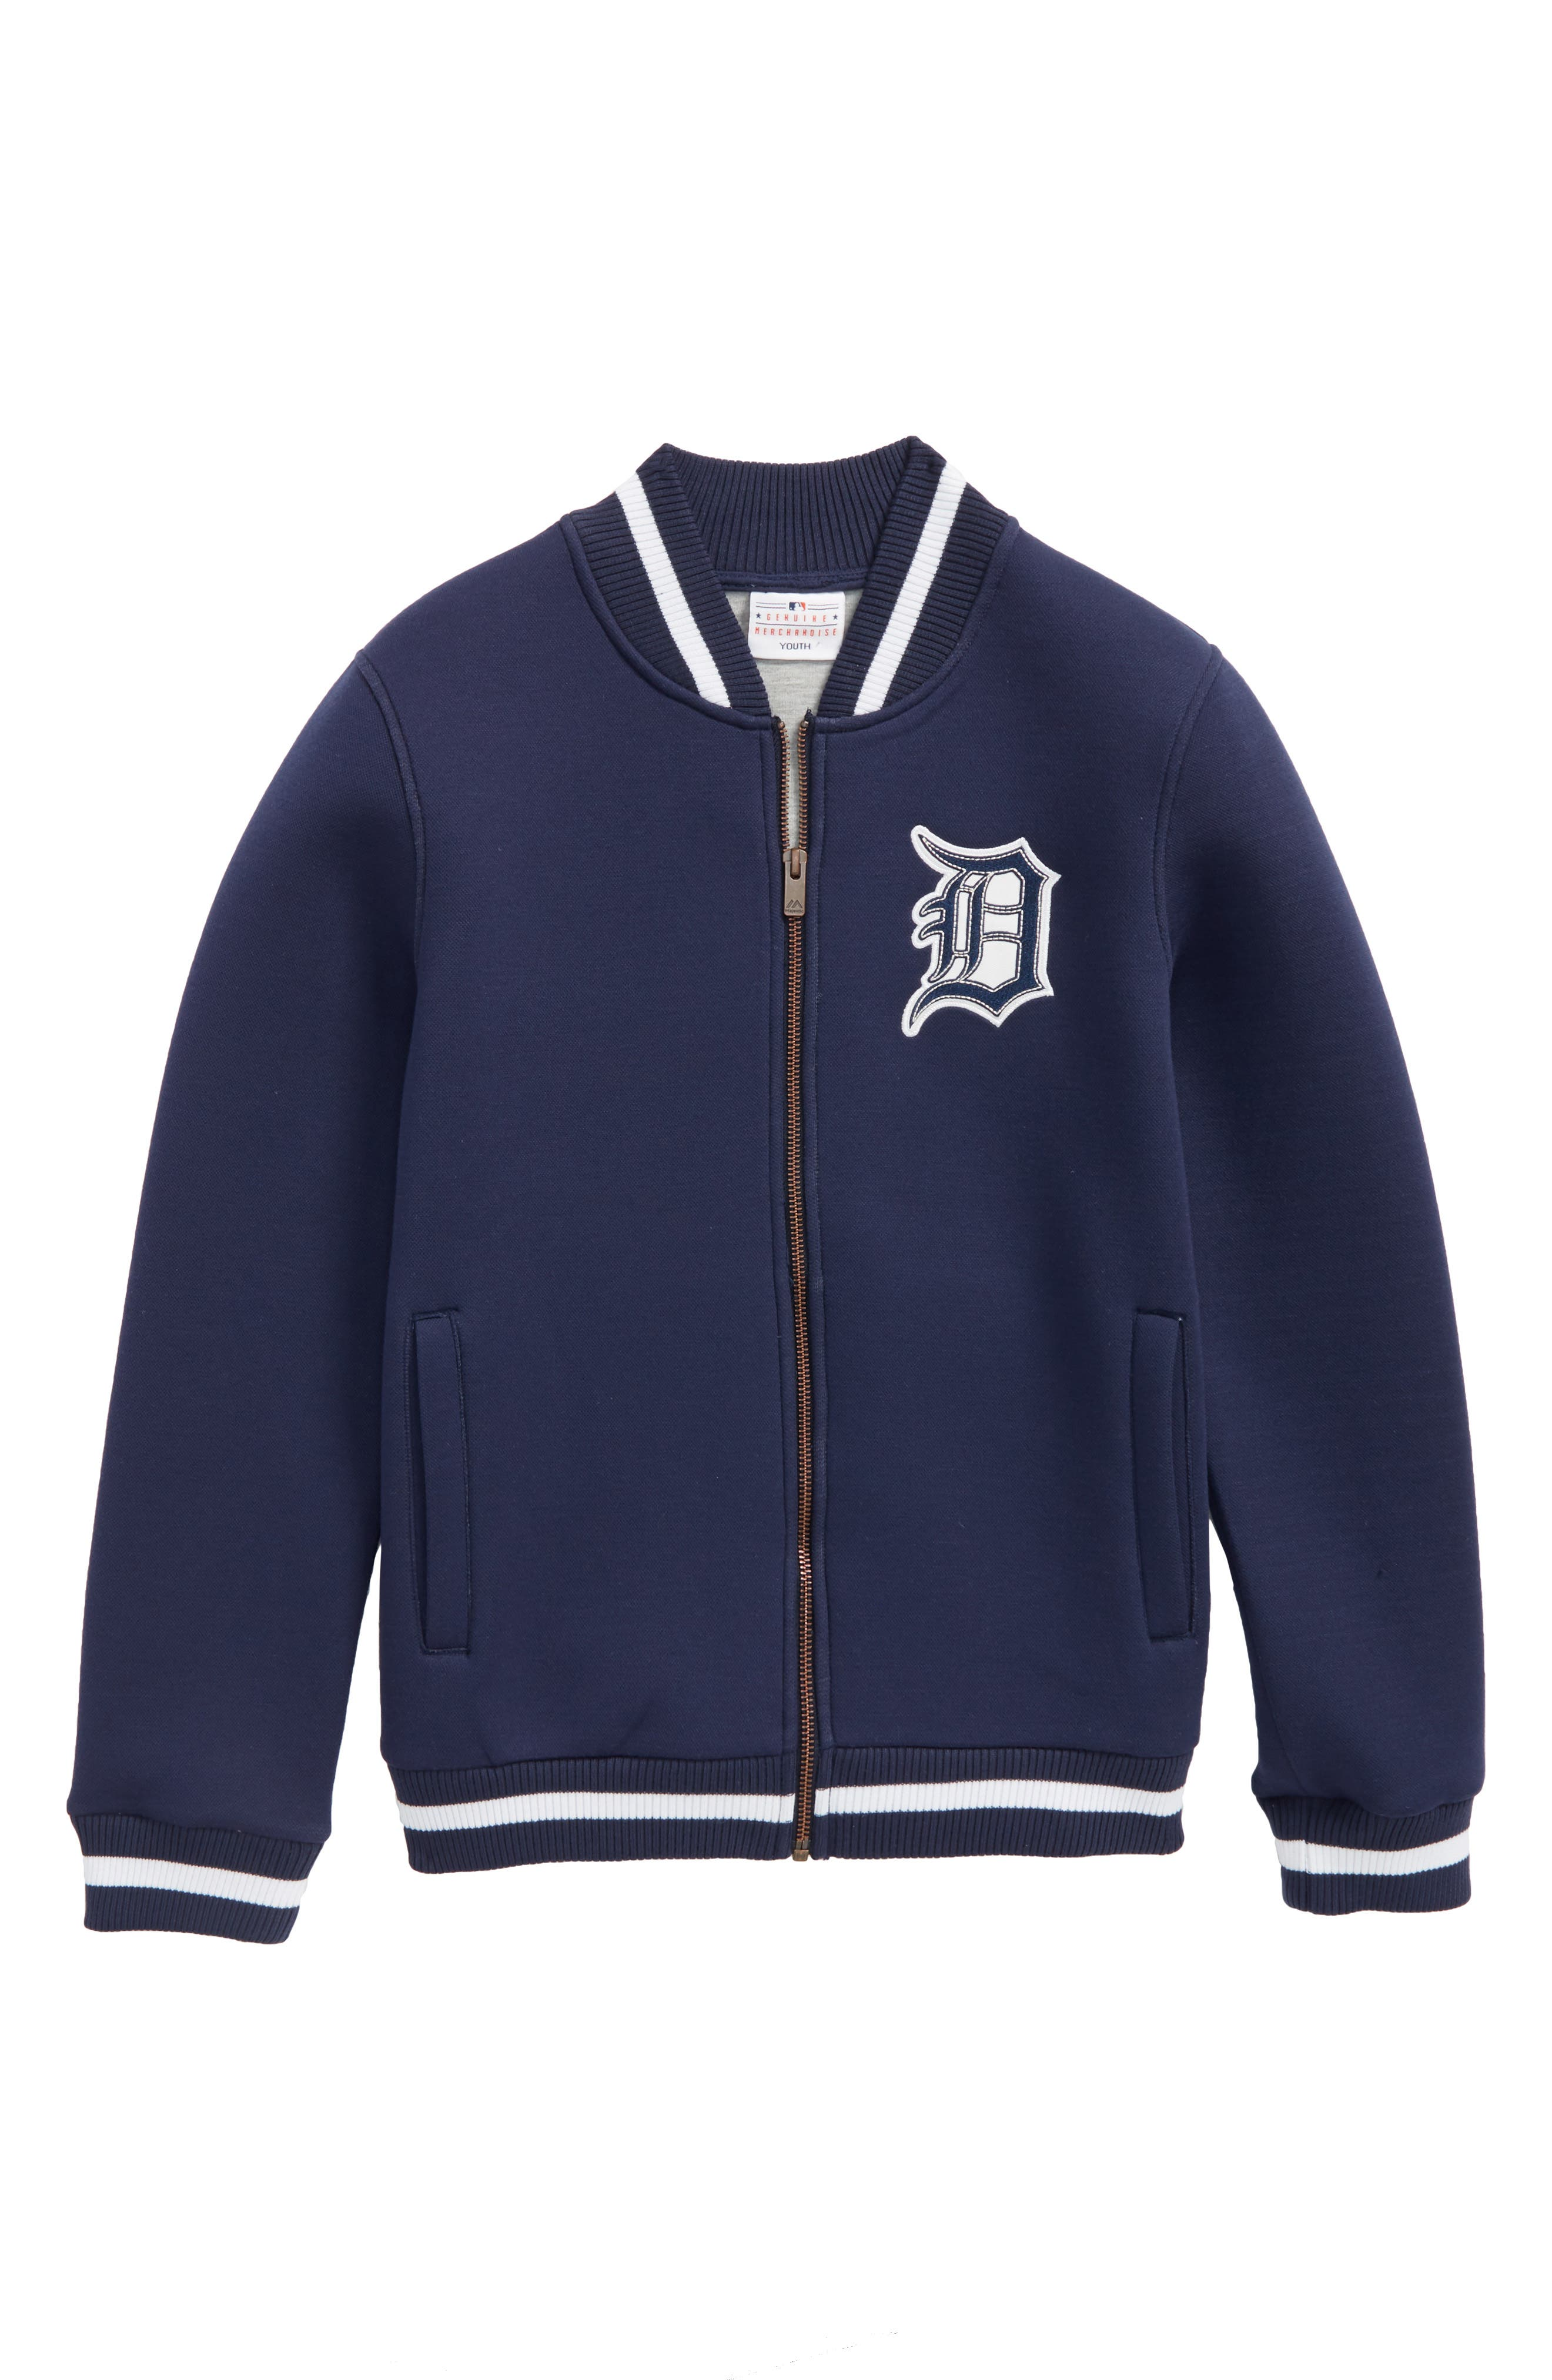 Classical Detroit Tigers Knit Varsity Jacket,                         Main,                         color, 400